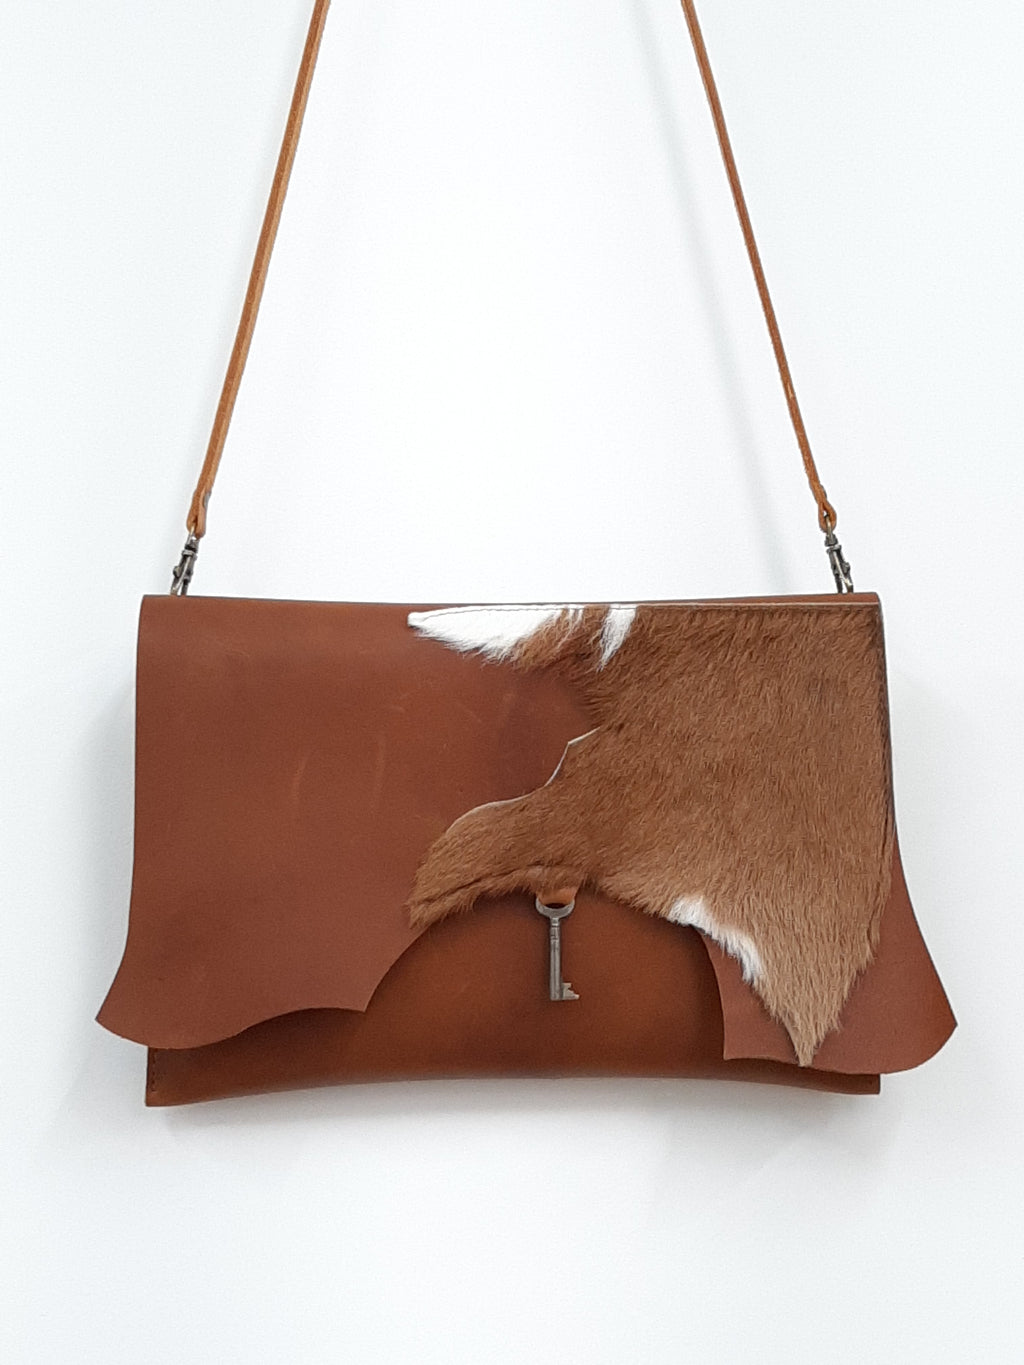 Raw Edge Clutch with vintage key detail - Goat hide - Coterie Leather Bags